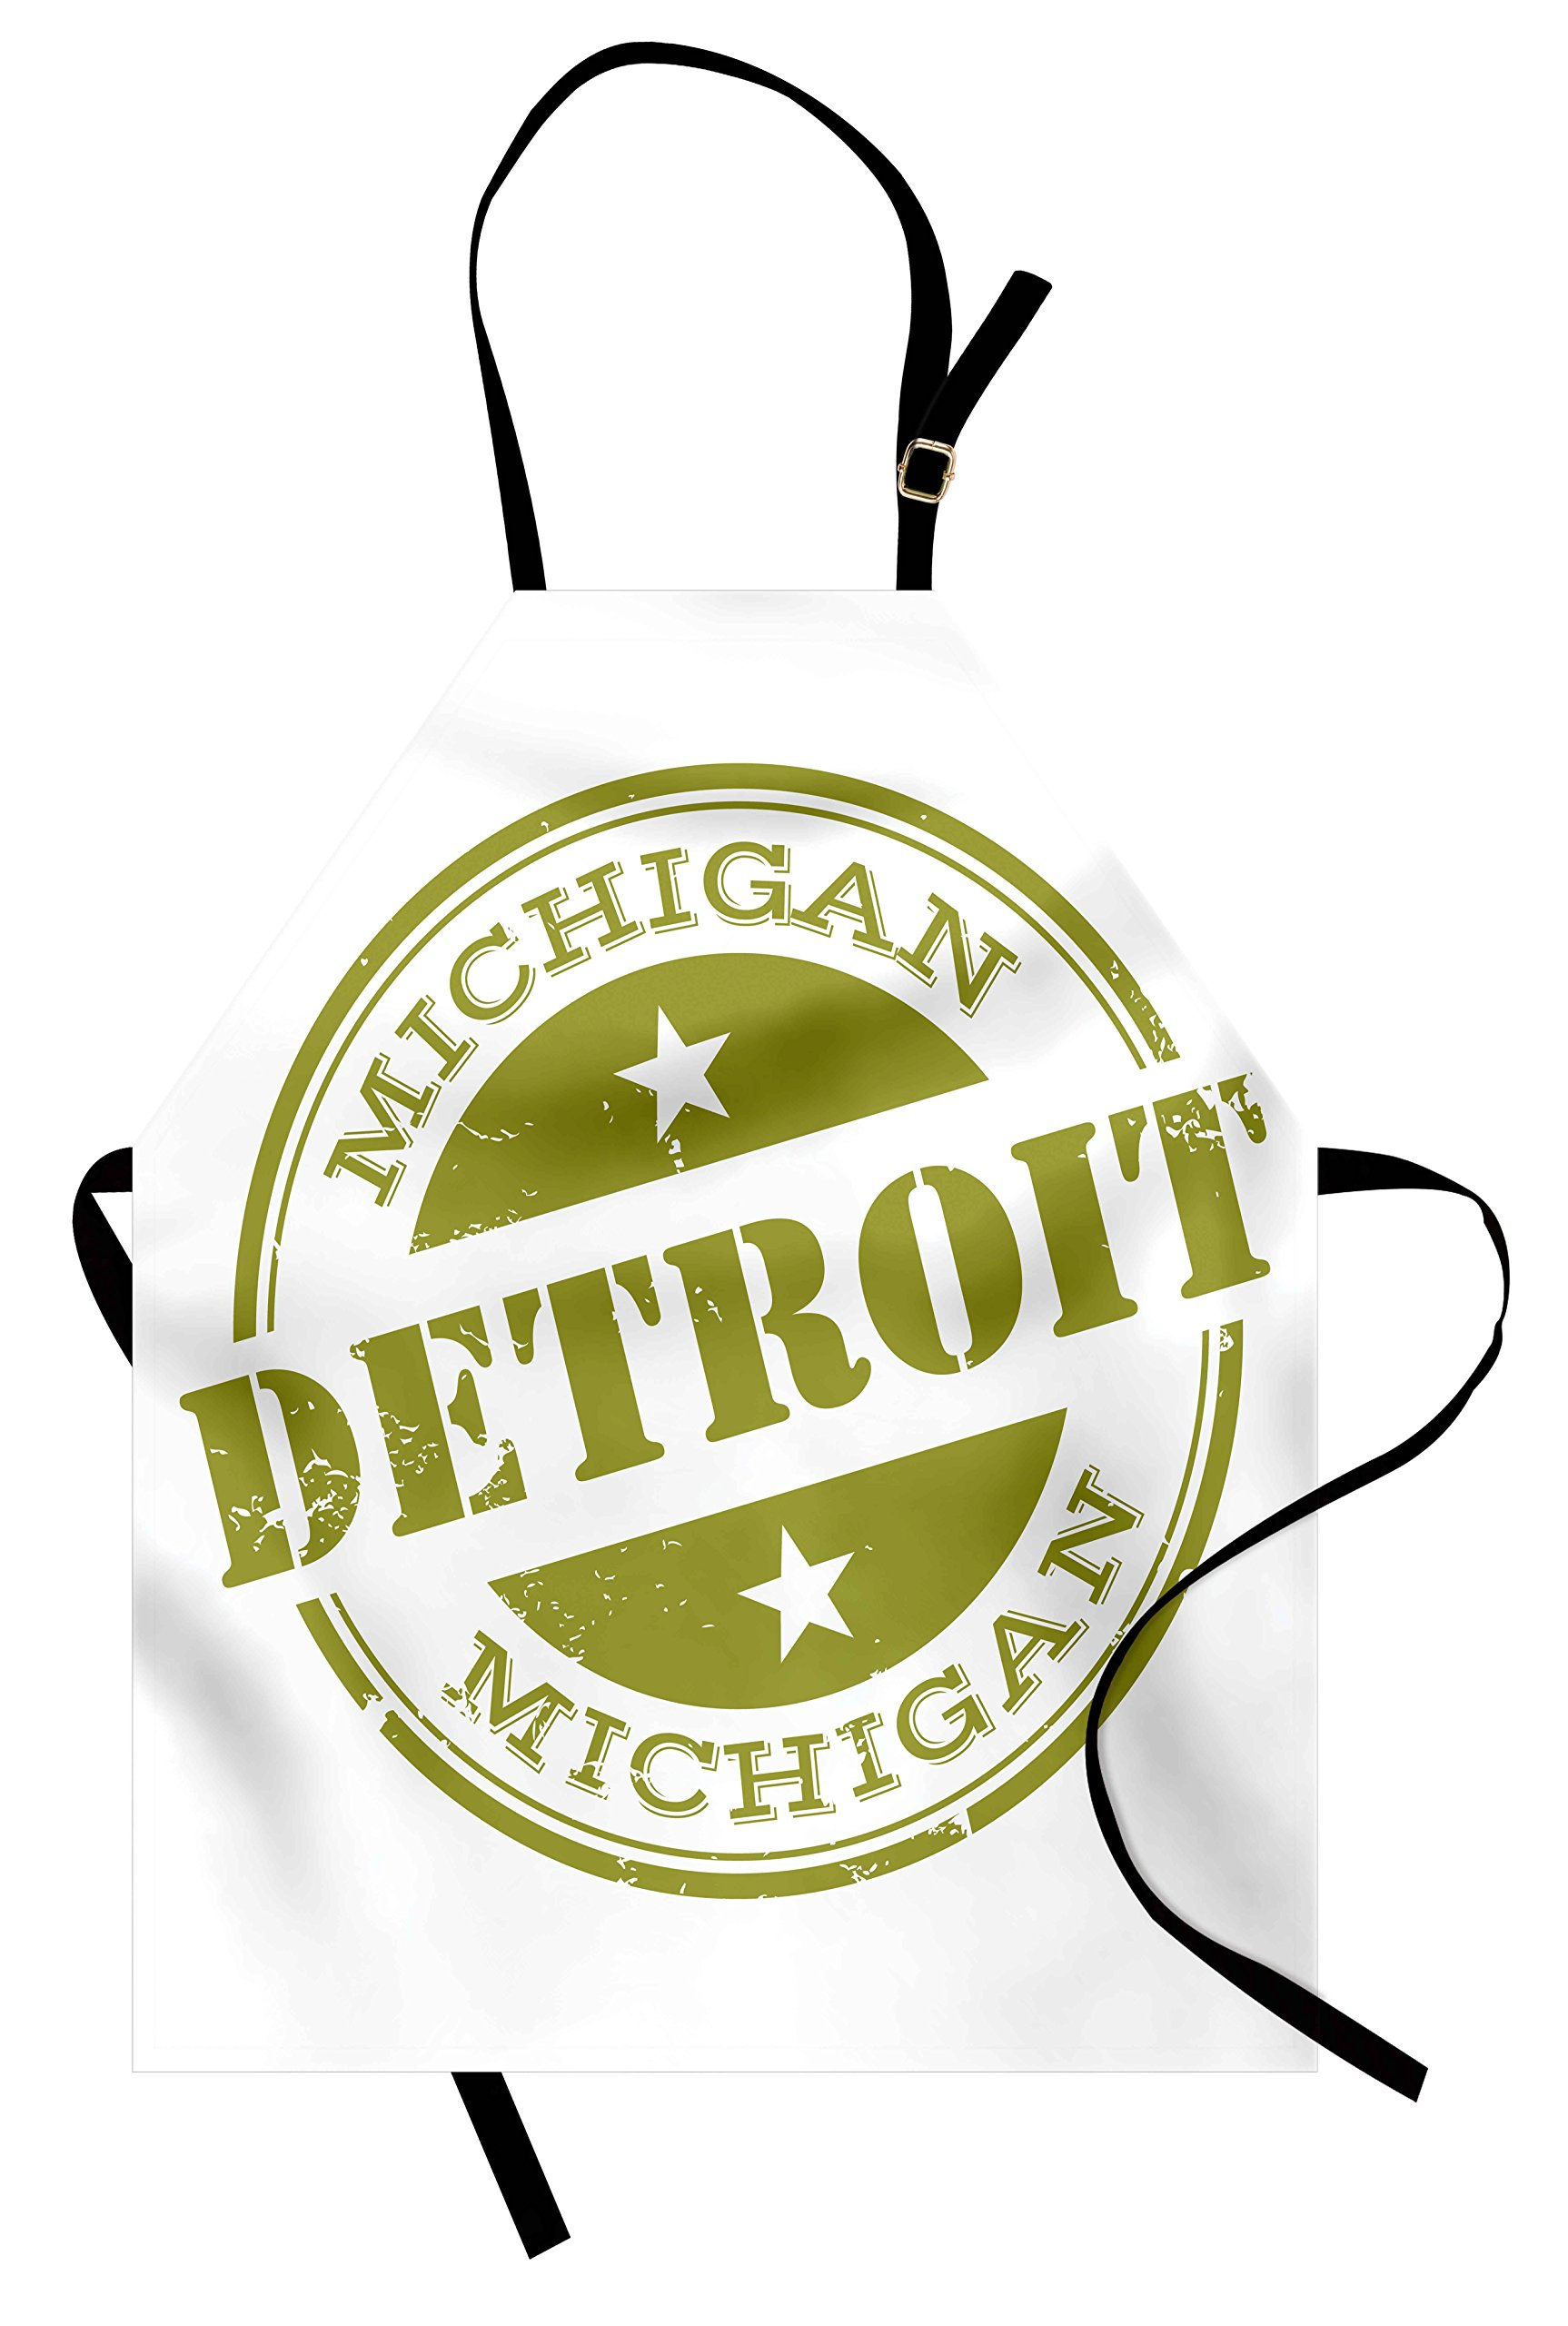 Ambesonne Detroit Apron, Aged Grunge Detroit Michigan Stamp Retro Design with Stars Tourism Travel, Unisex Kitchen Bib Apron with Adjustable Neck for Cooking Baking Gardening, Olive Green White